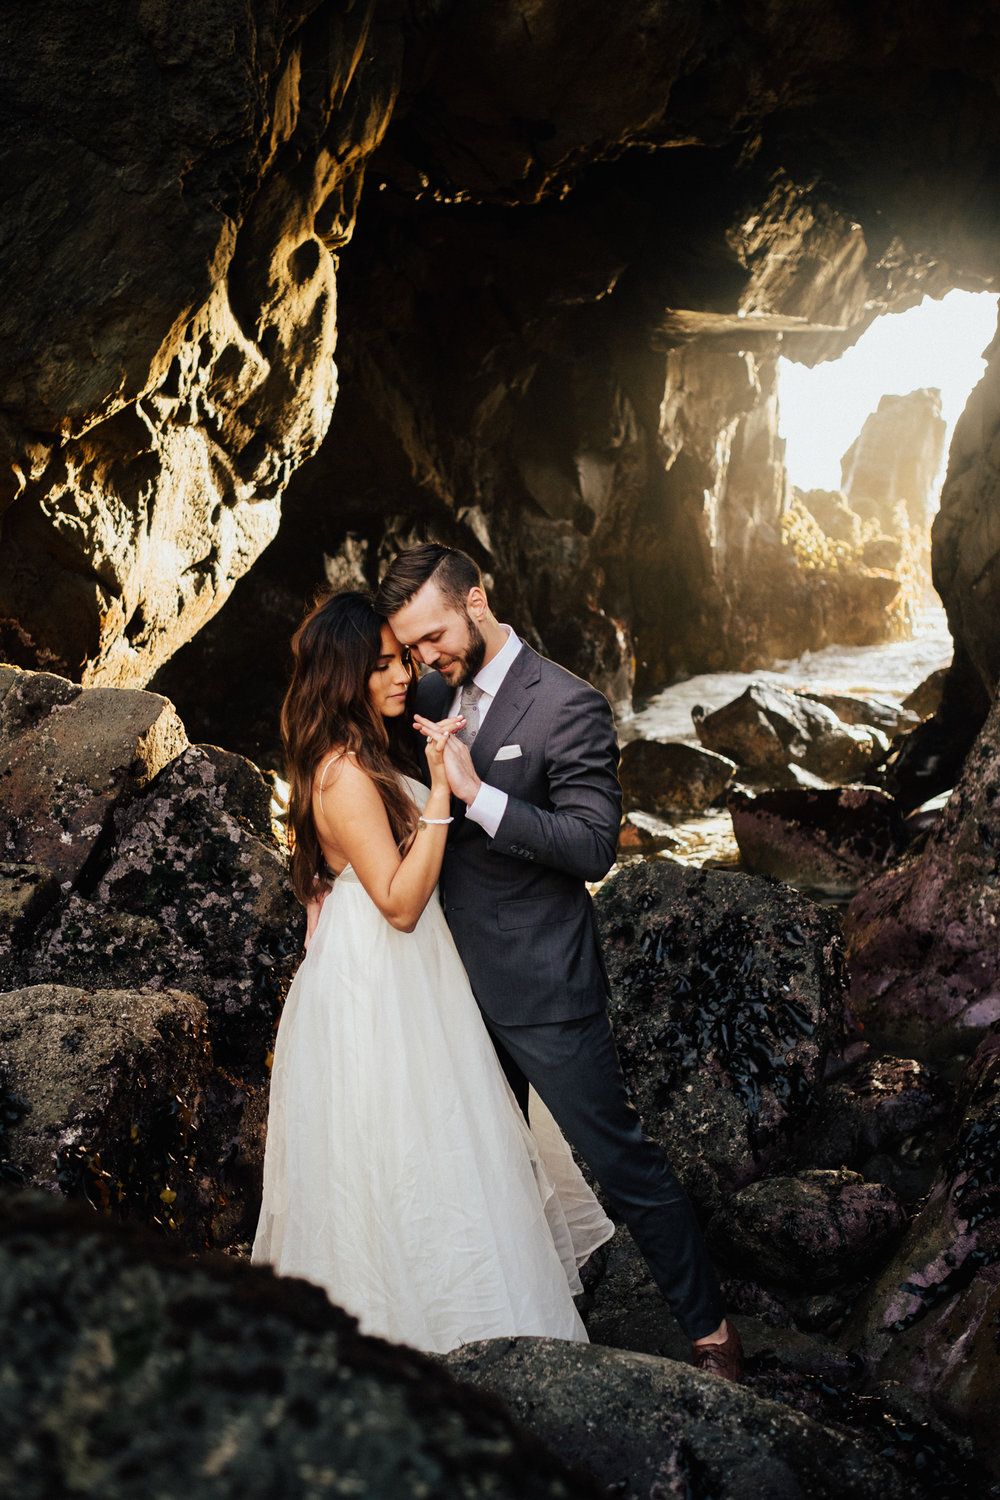 Arizona-Adventure-Elopement-Wedding-Photographer-8.jpg